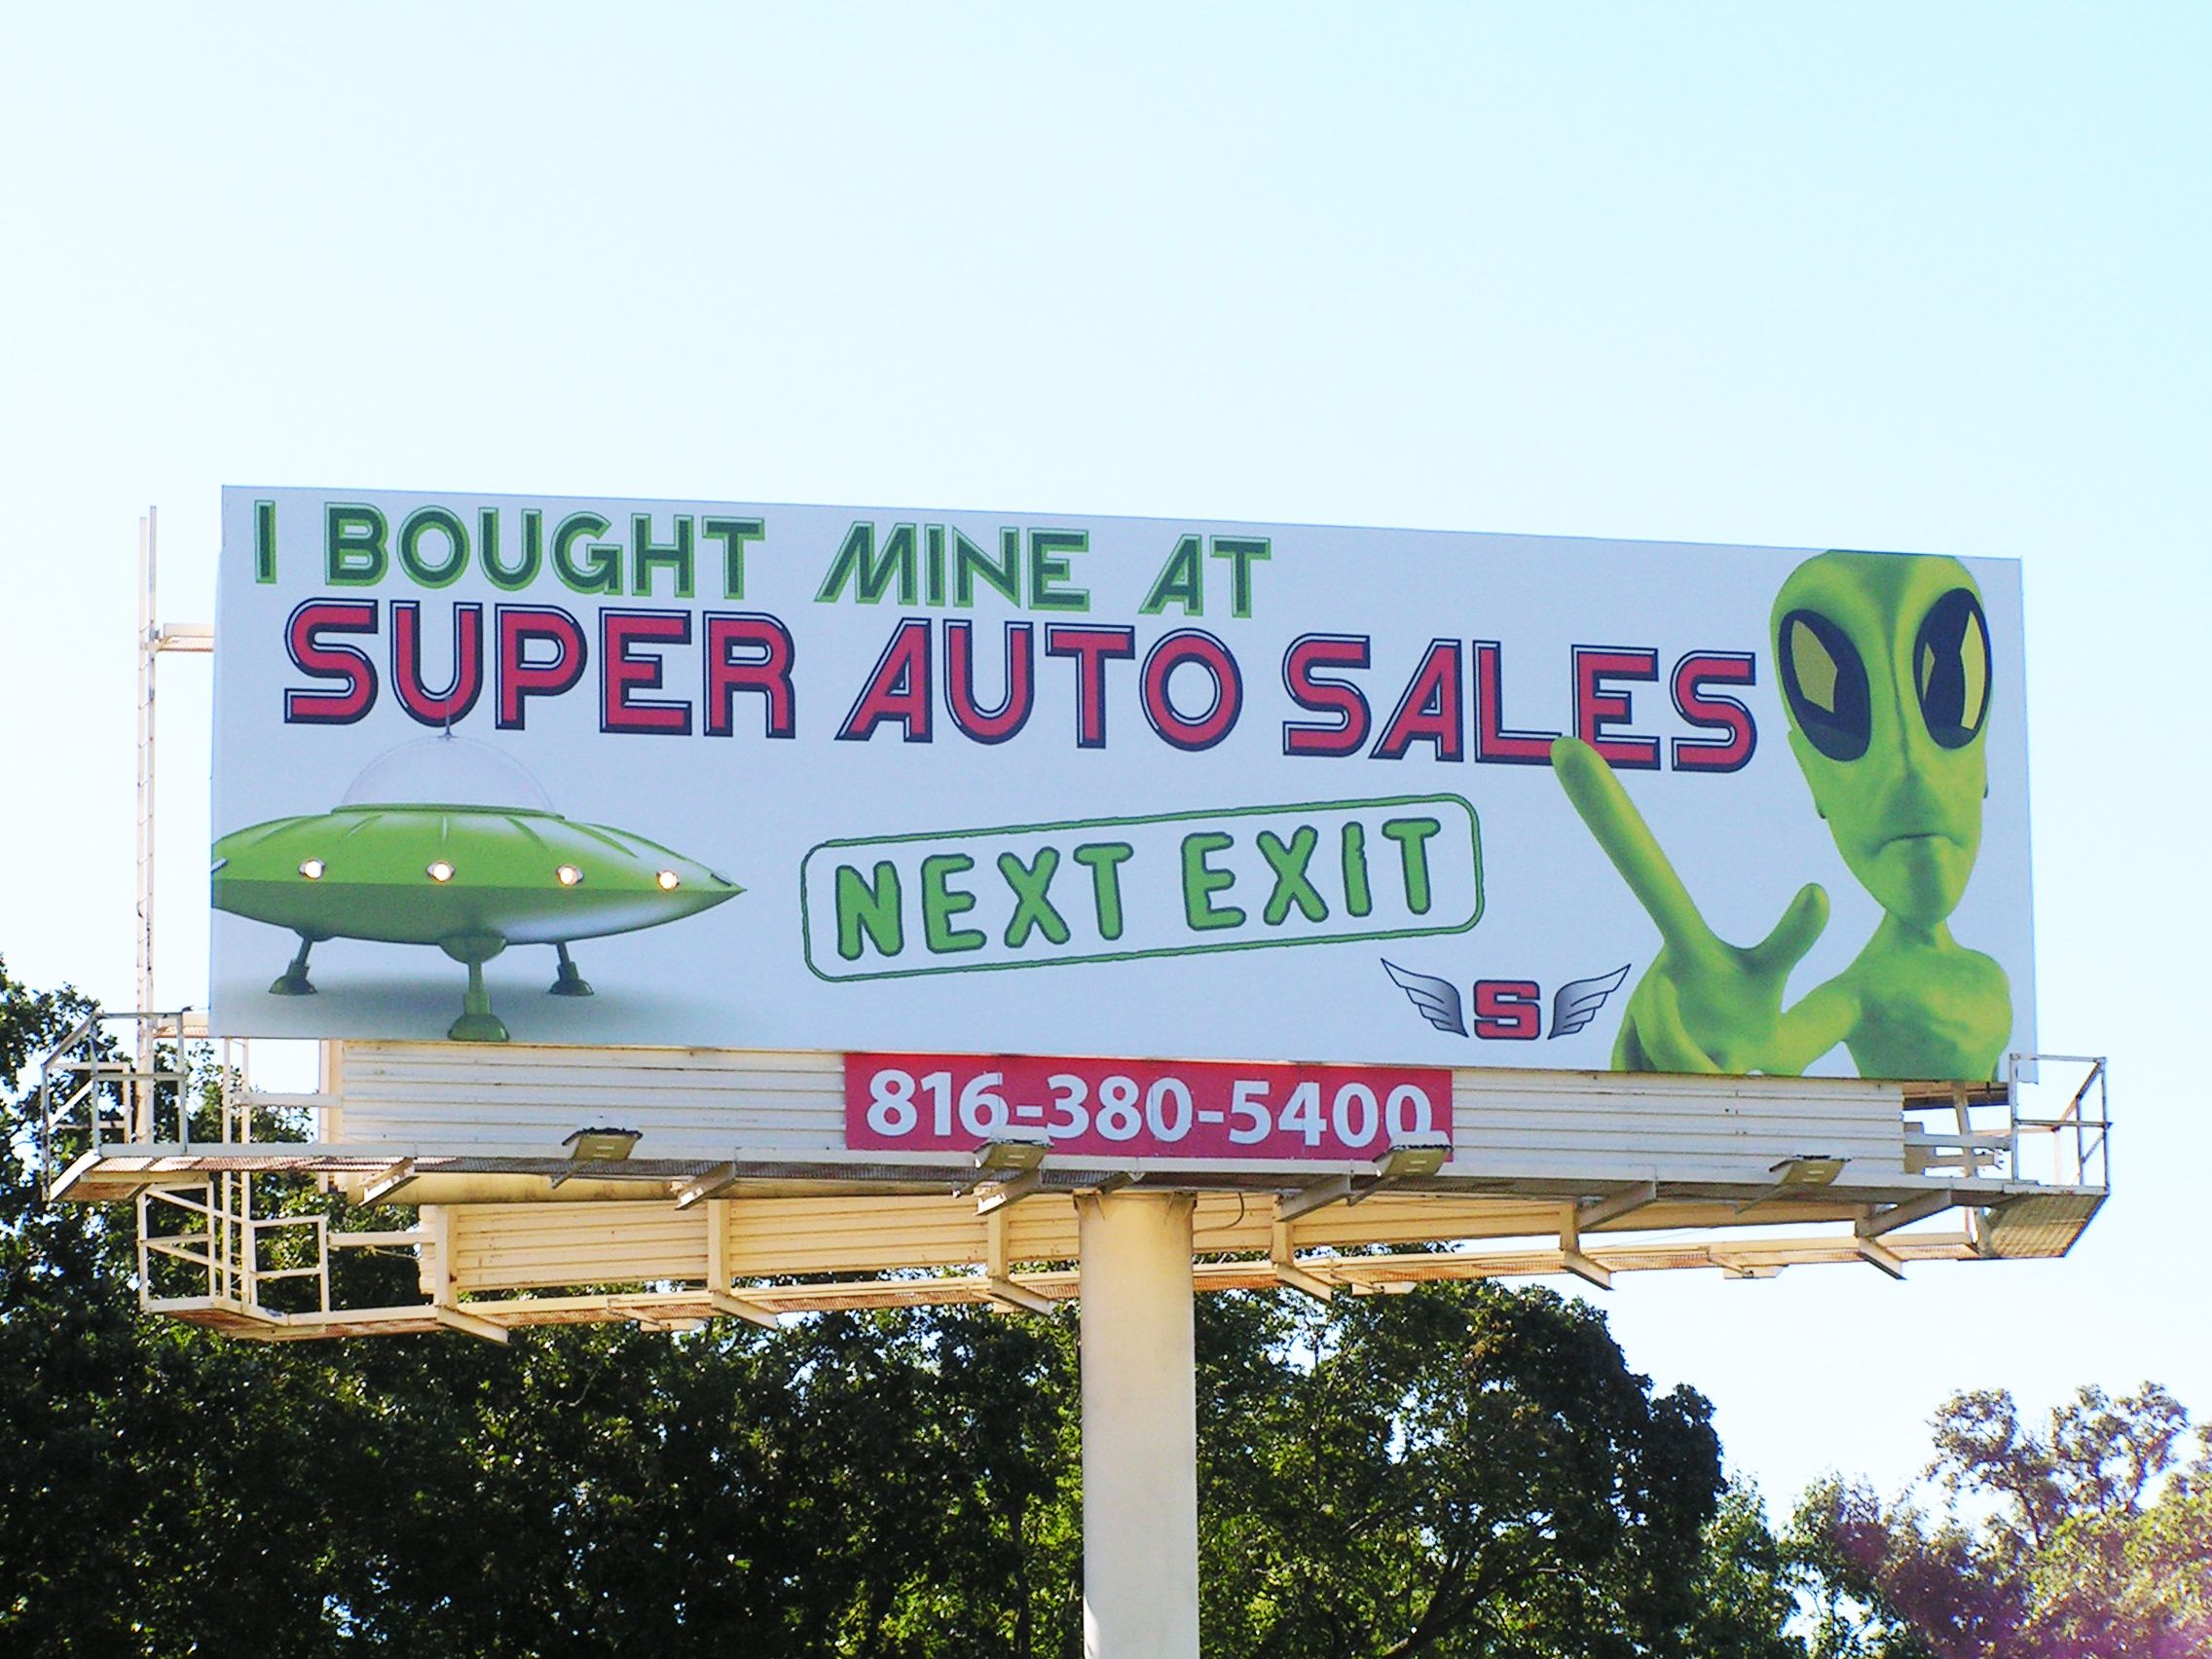 Super Auto Sales >> Supernaw S Super Auto Sales With Working Spaceship Lights In